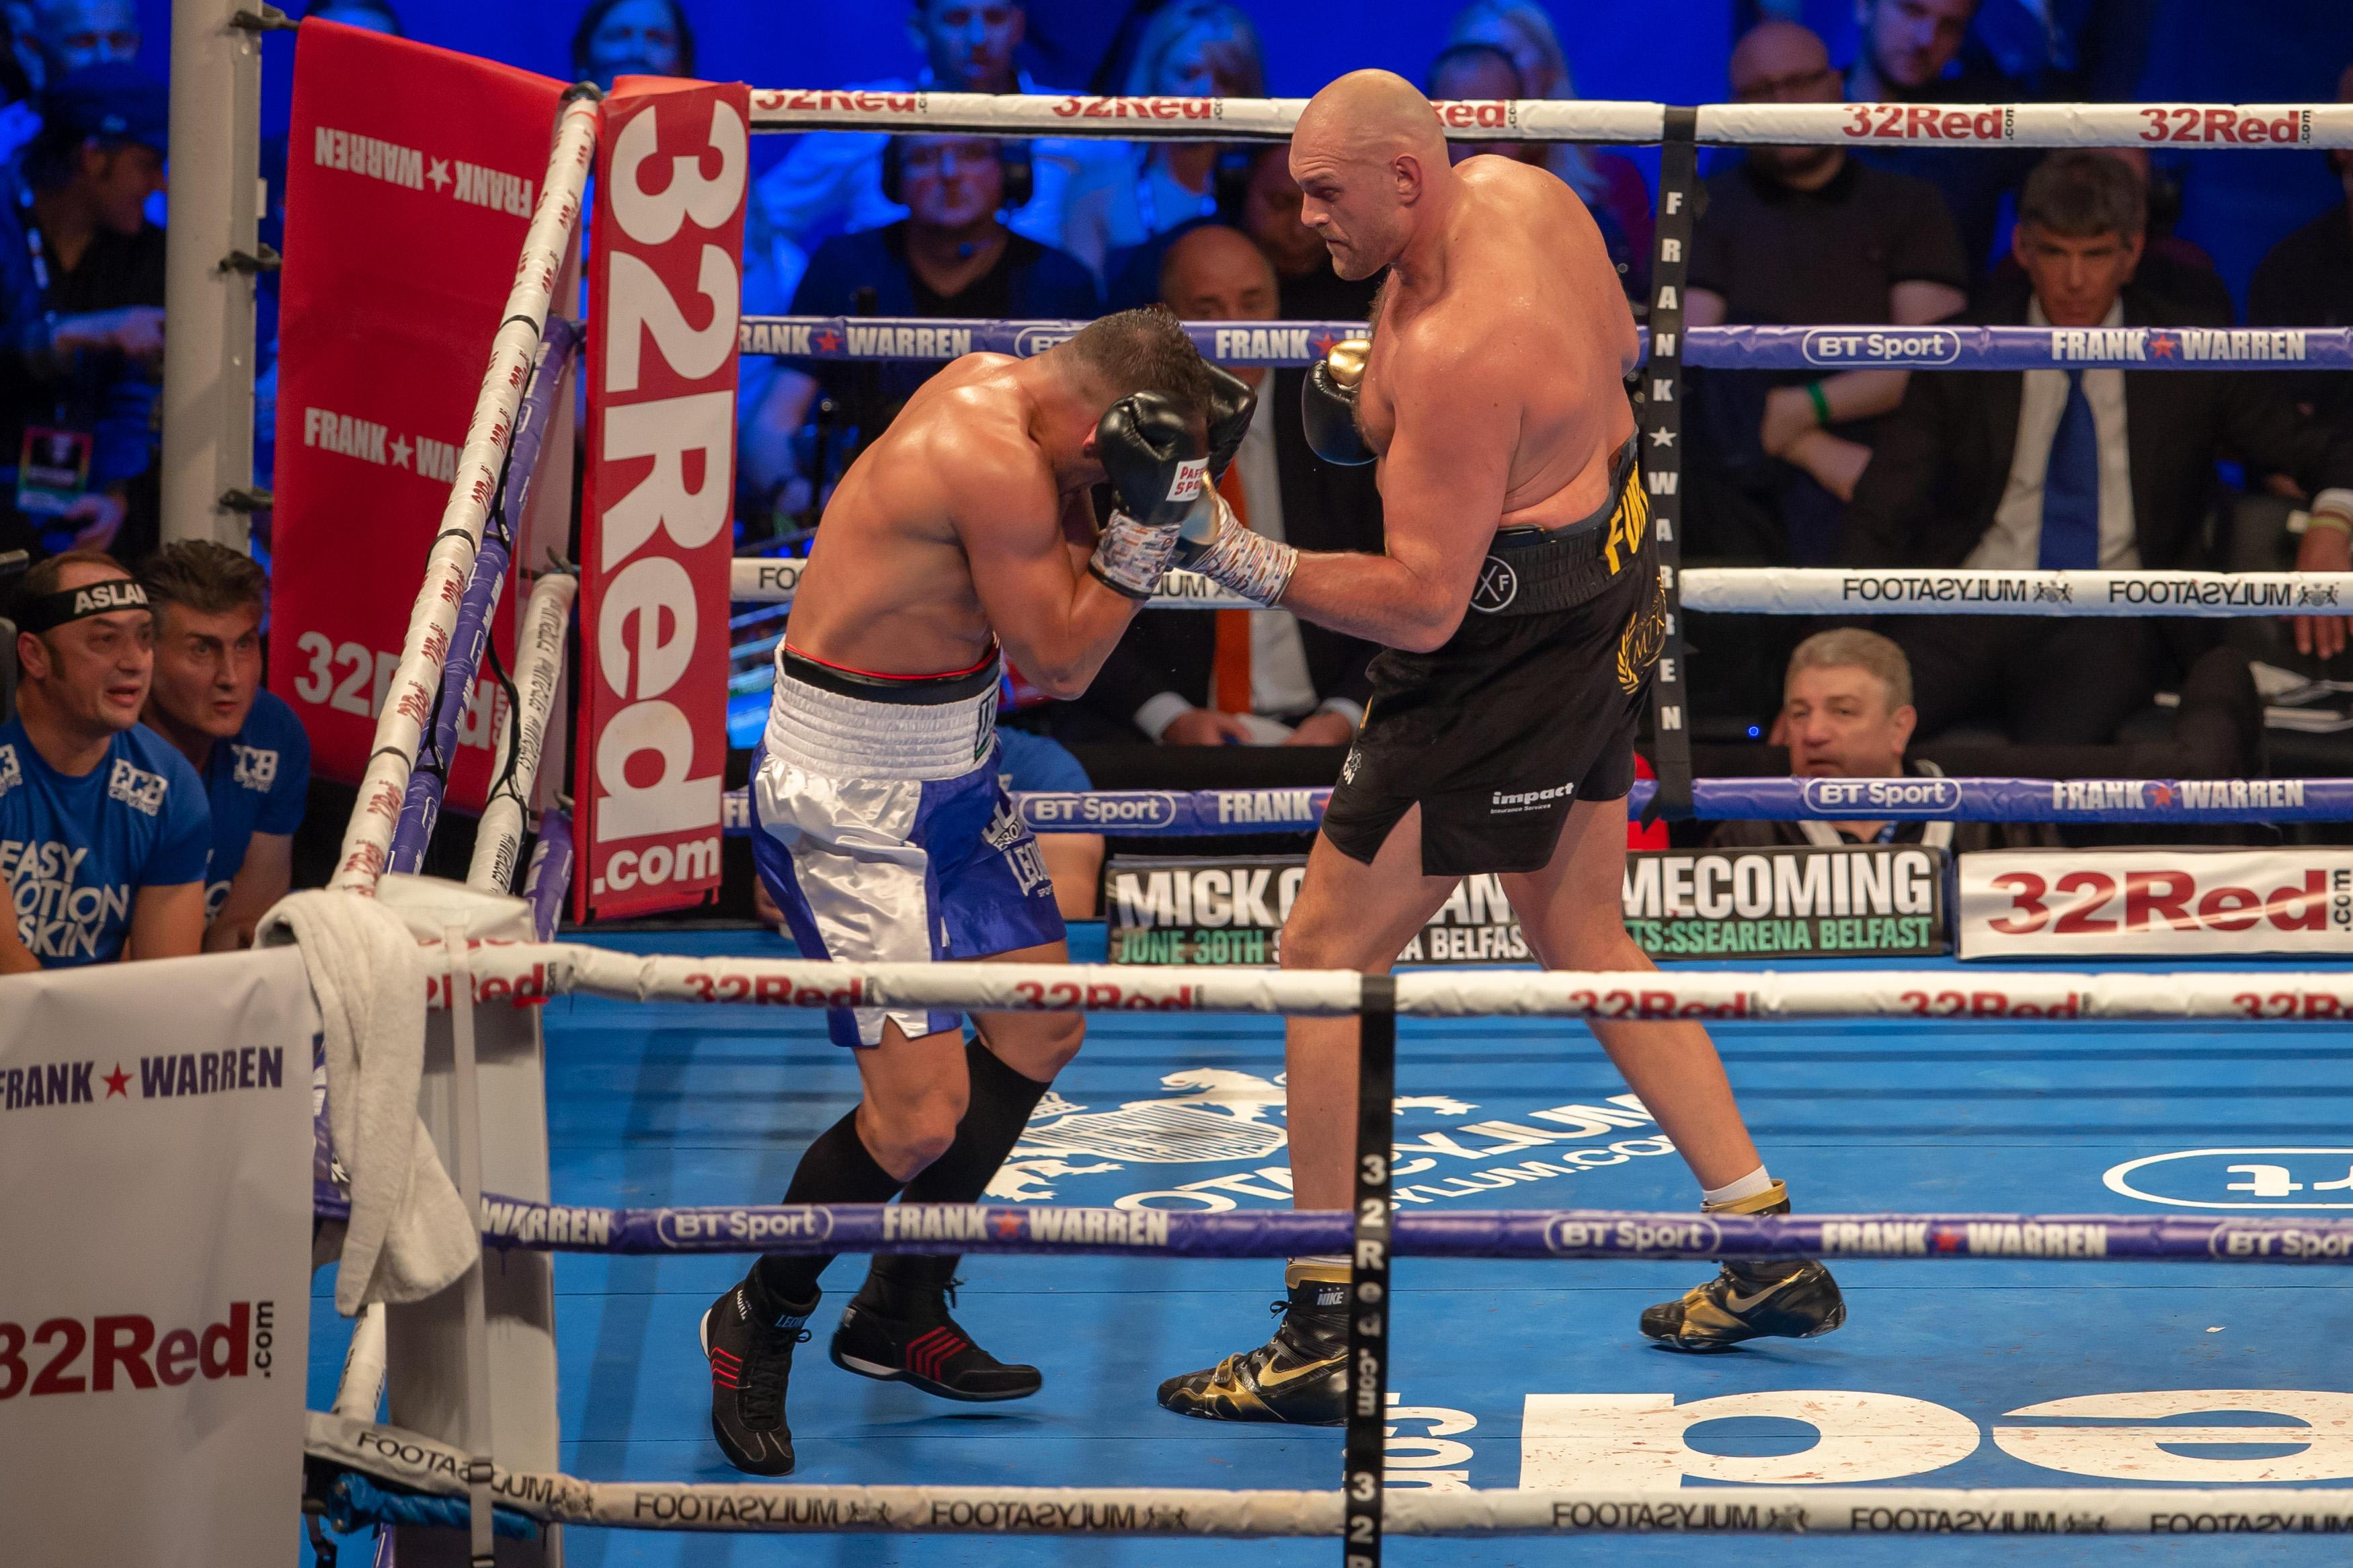 Fury ended his two-and-a-half year hiatus from boxing with a stoppage win against Sefer Seferi